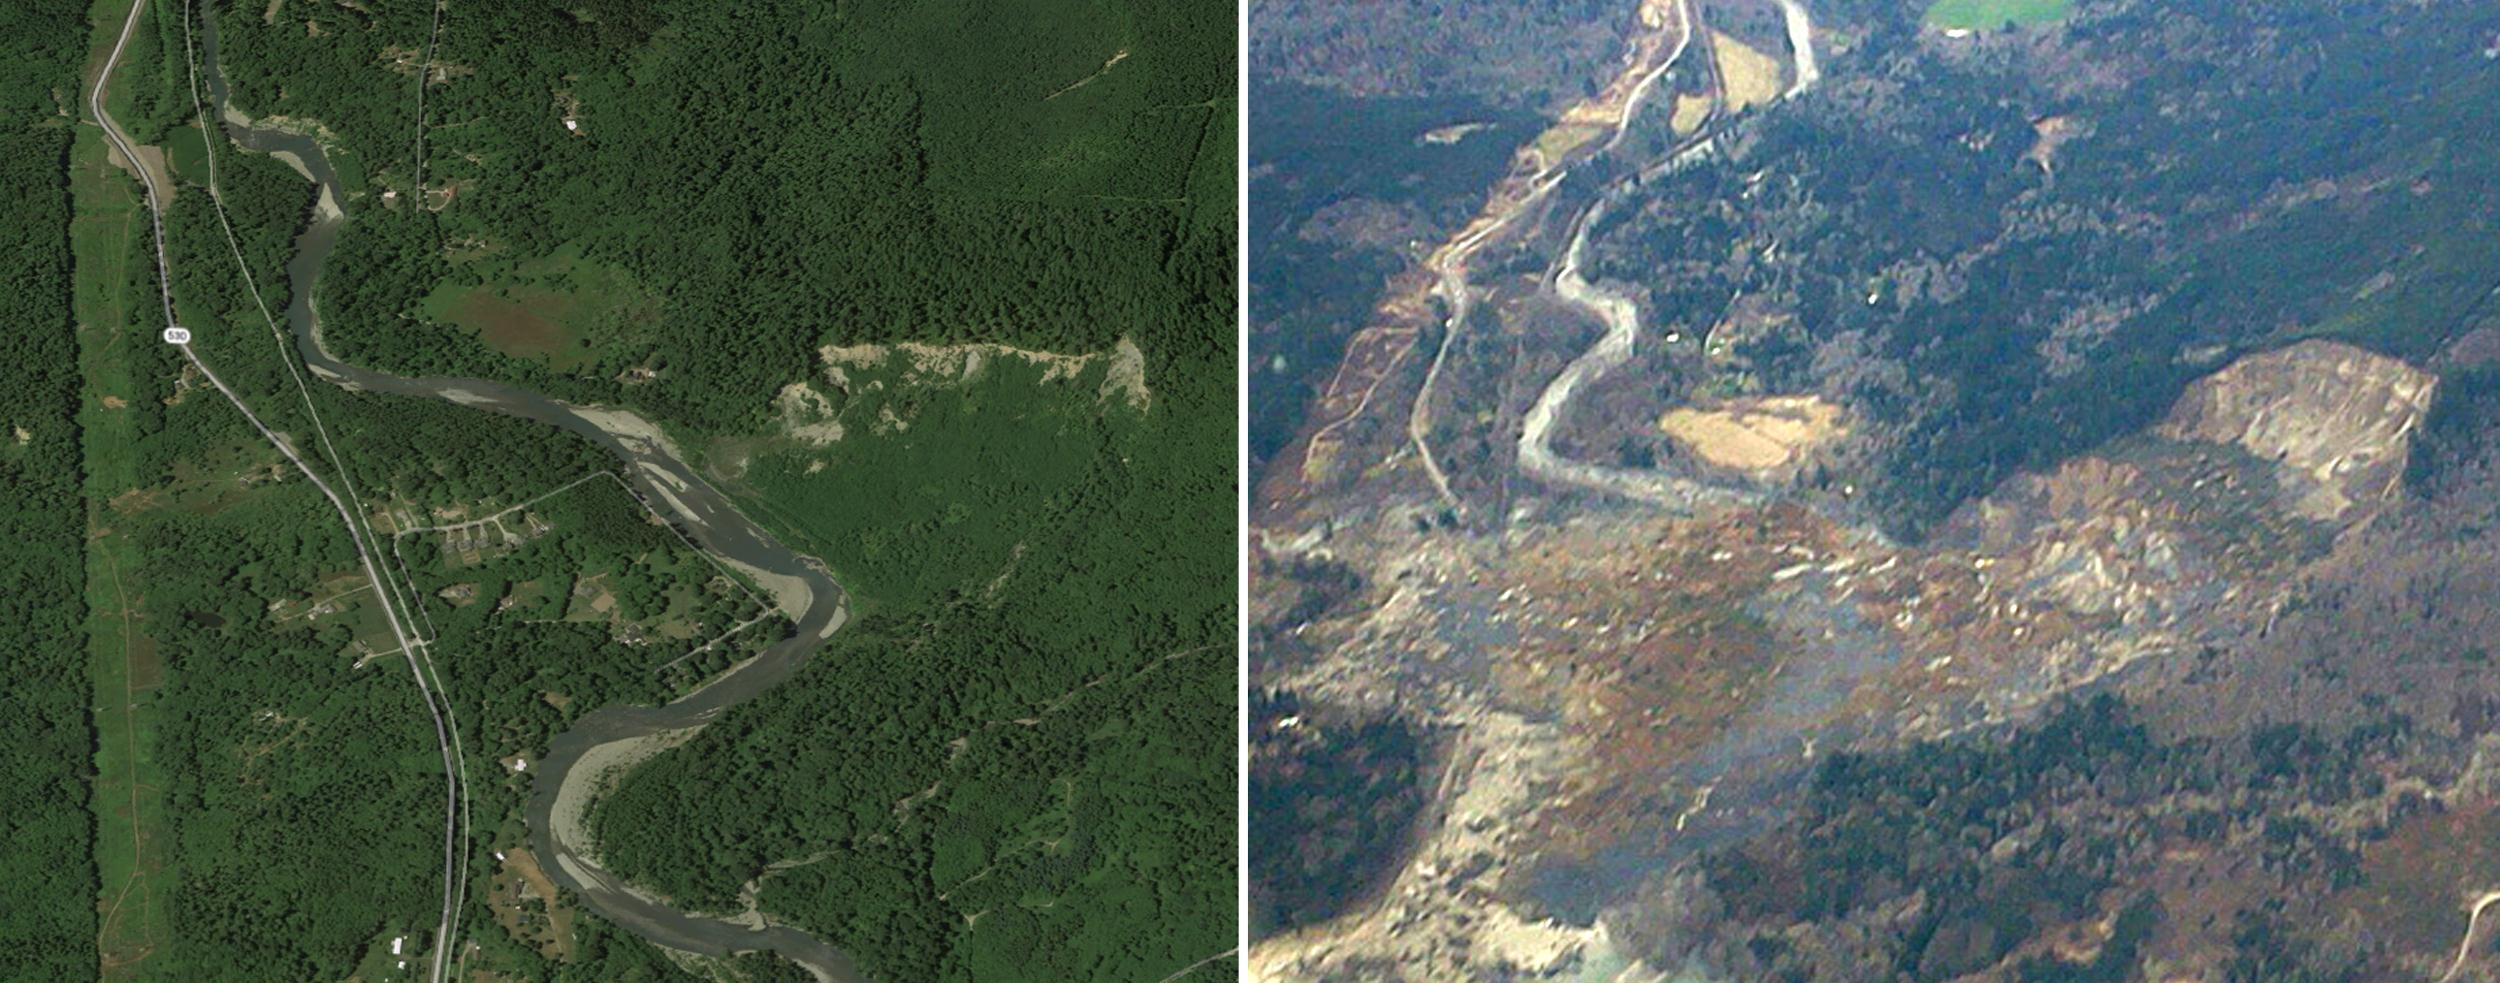 Image: Before and After Oso mudslide